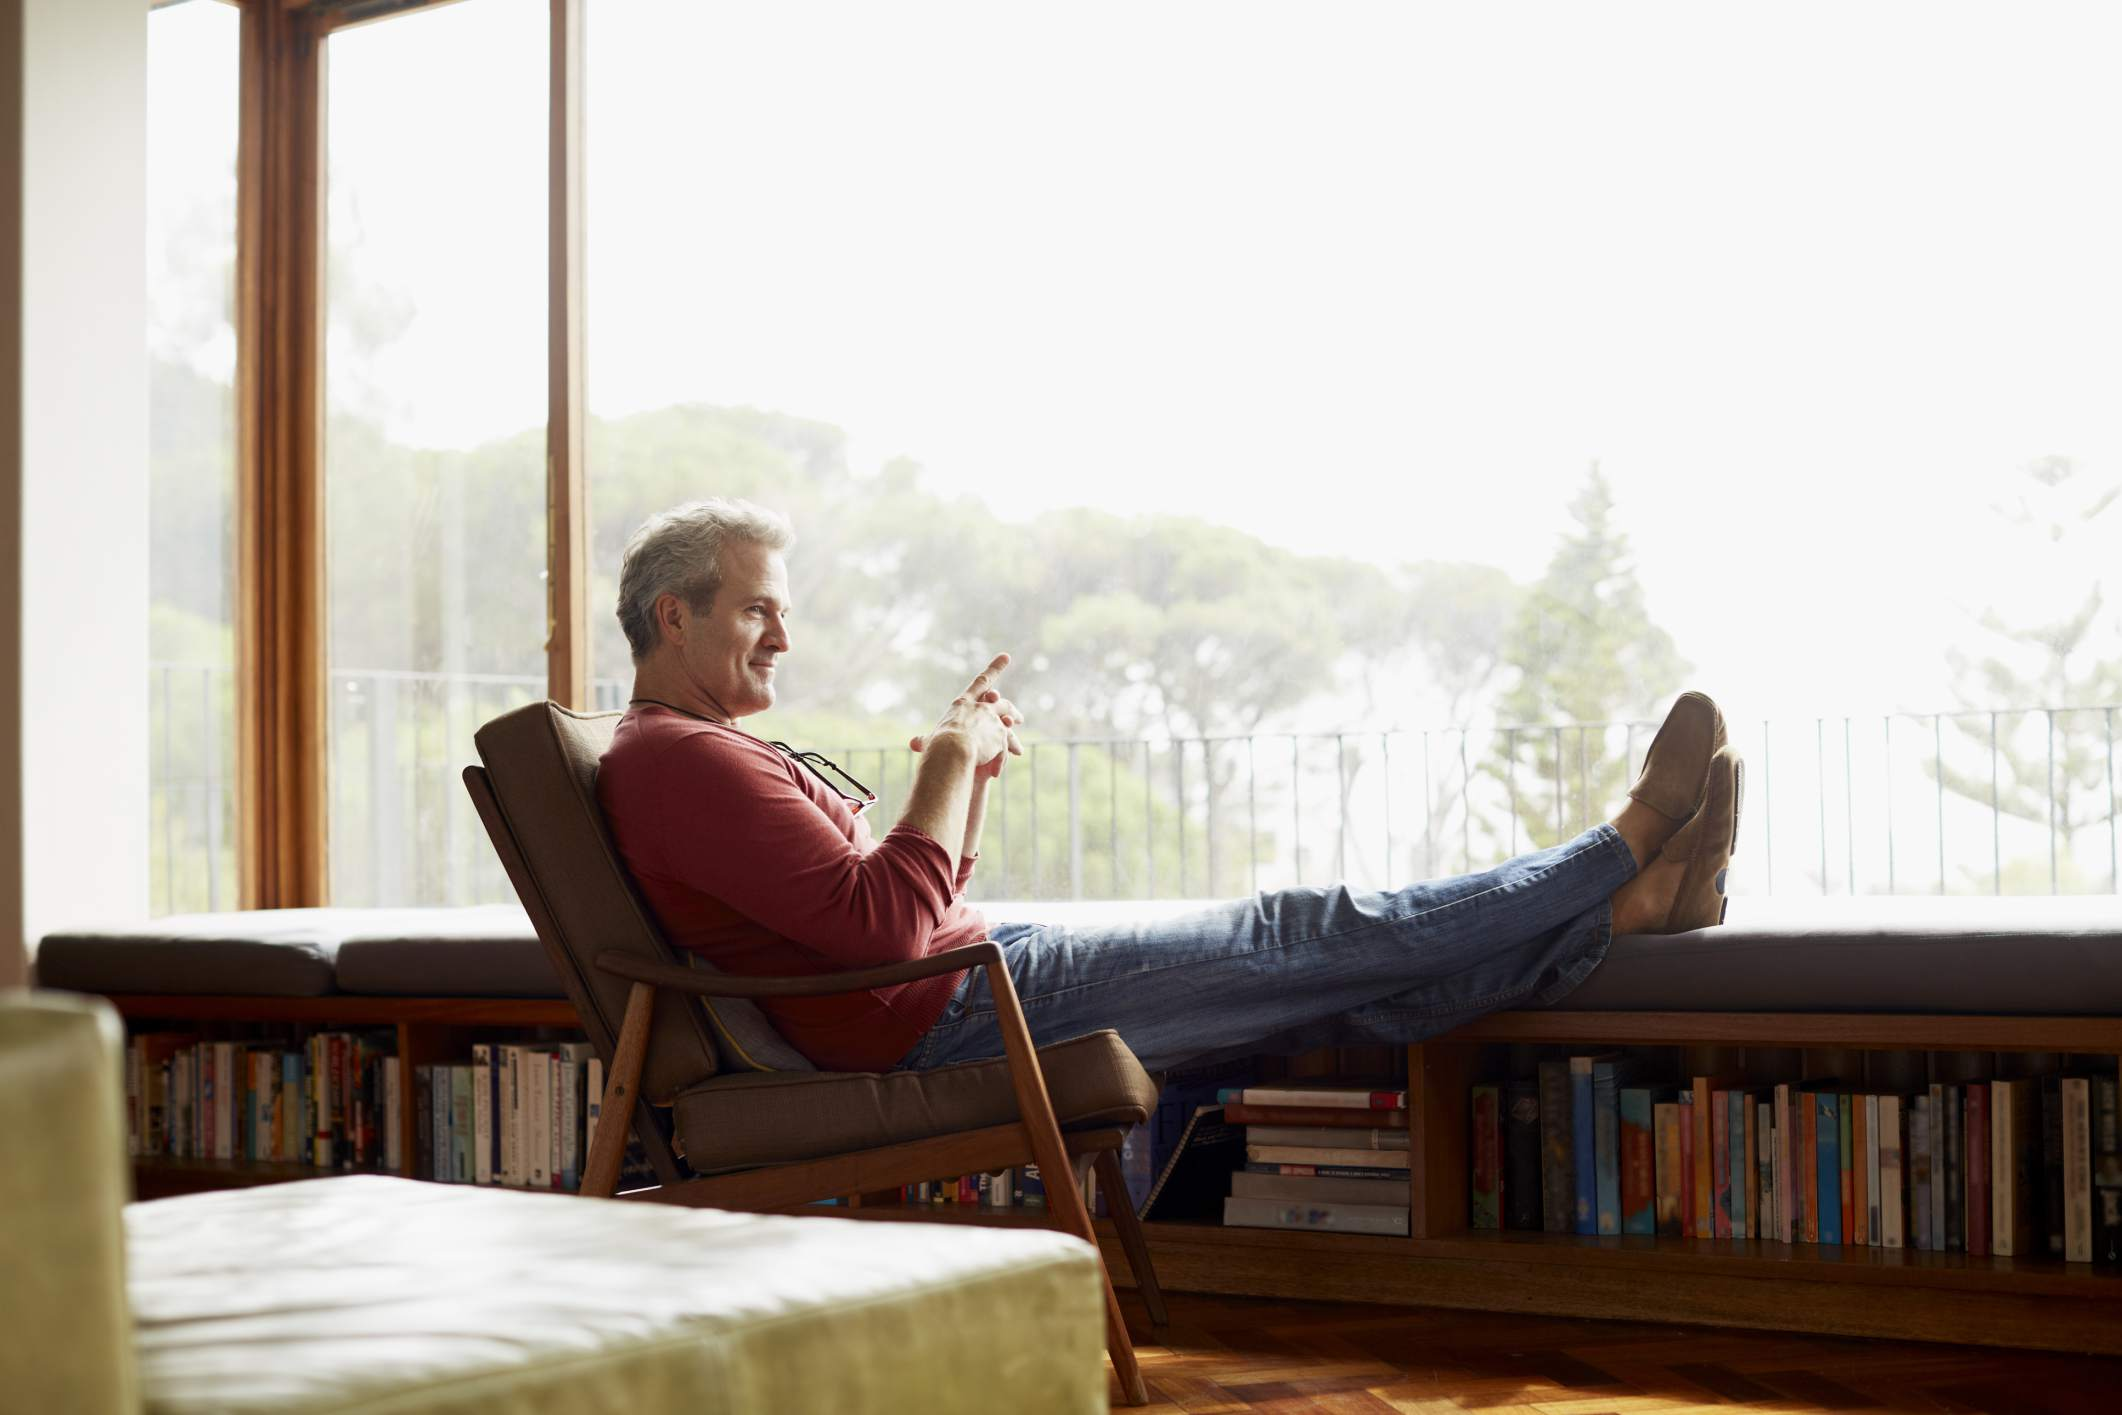 content mature man with feet up looking out at landscape